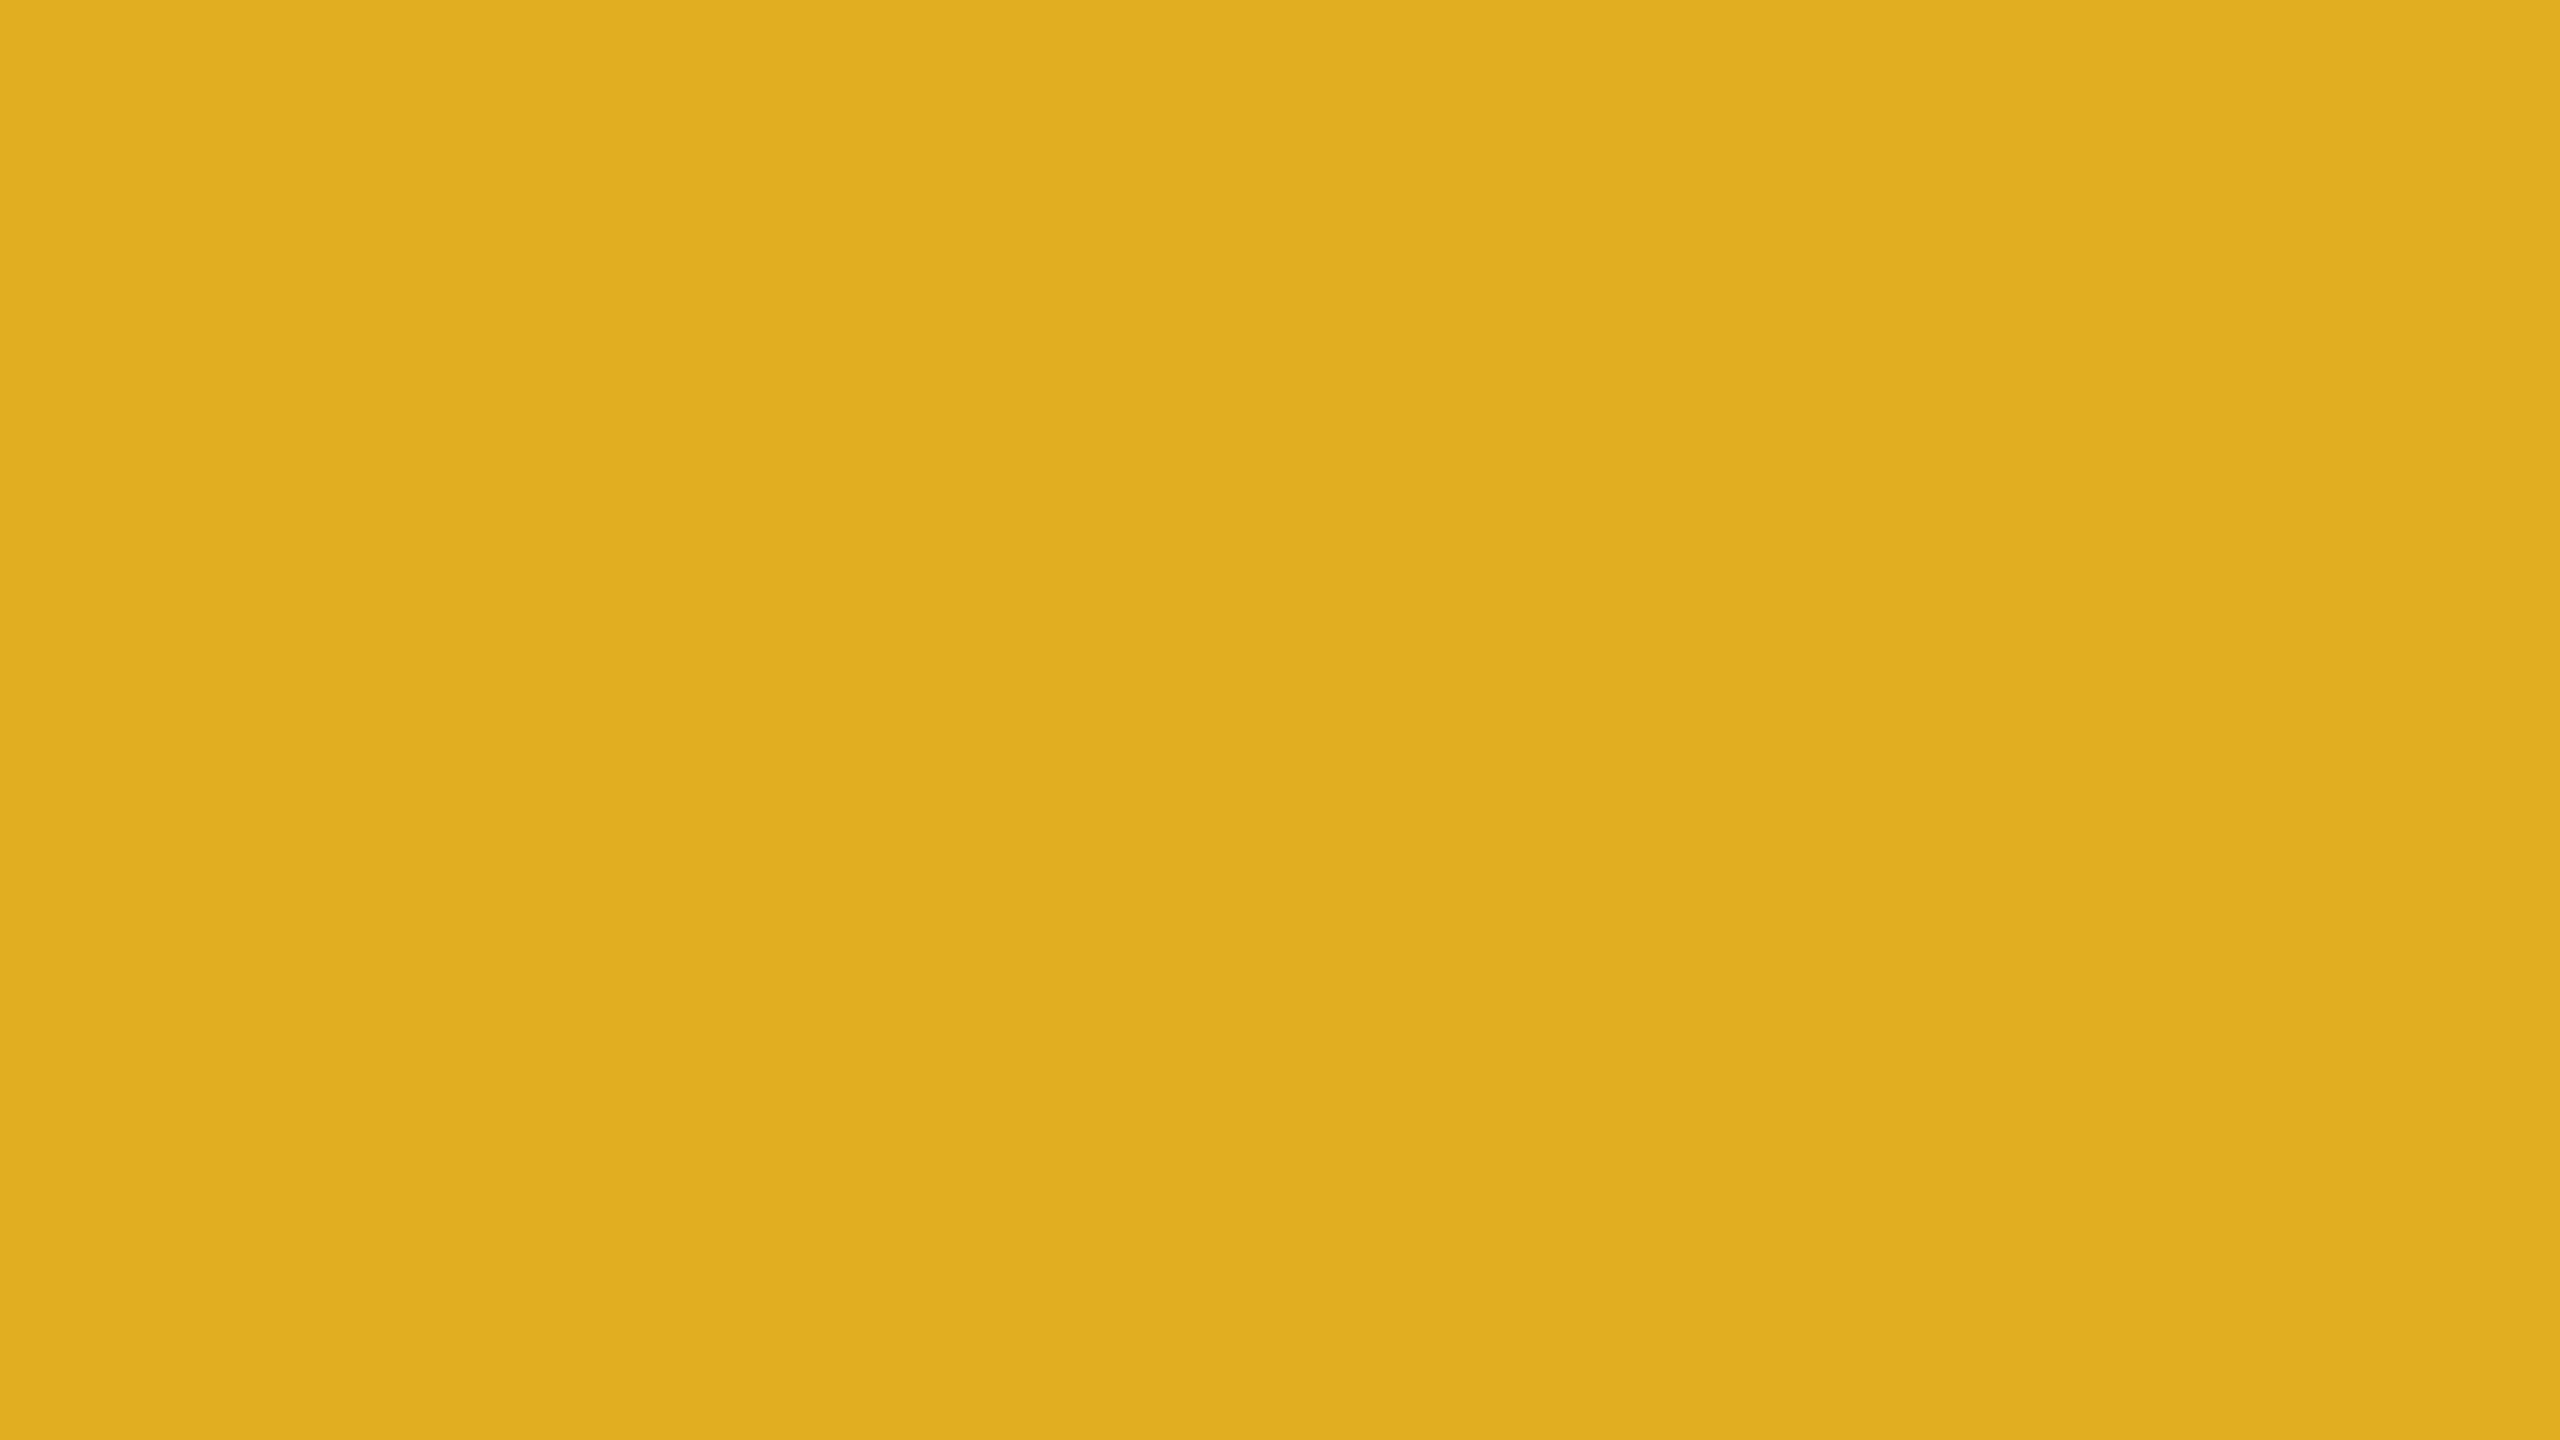 2560x1440 Urobilin Solid Color Background